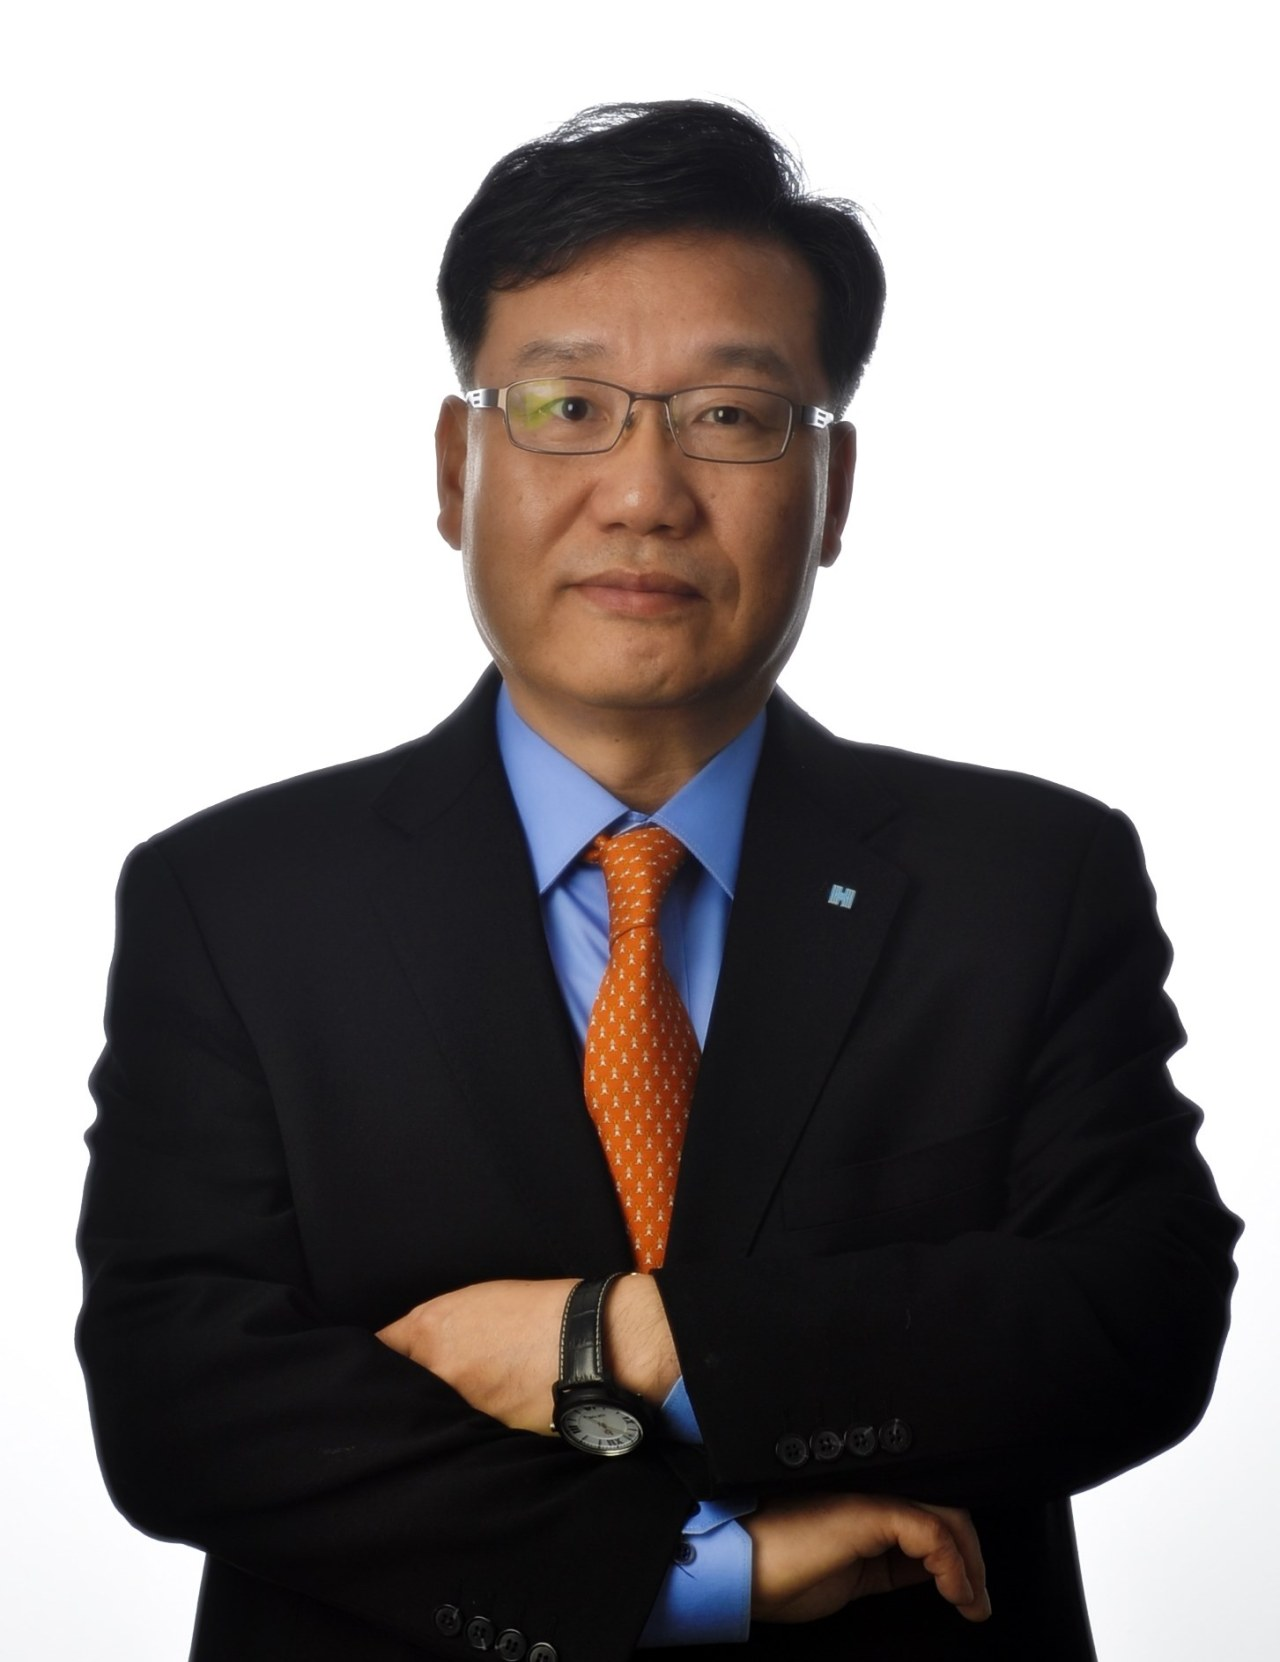 Herald Corp. CEO and Publisher Kwon Chung-won (Herald Corp.)